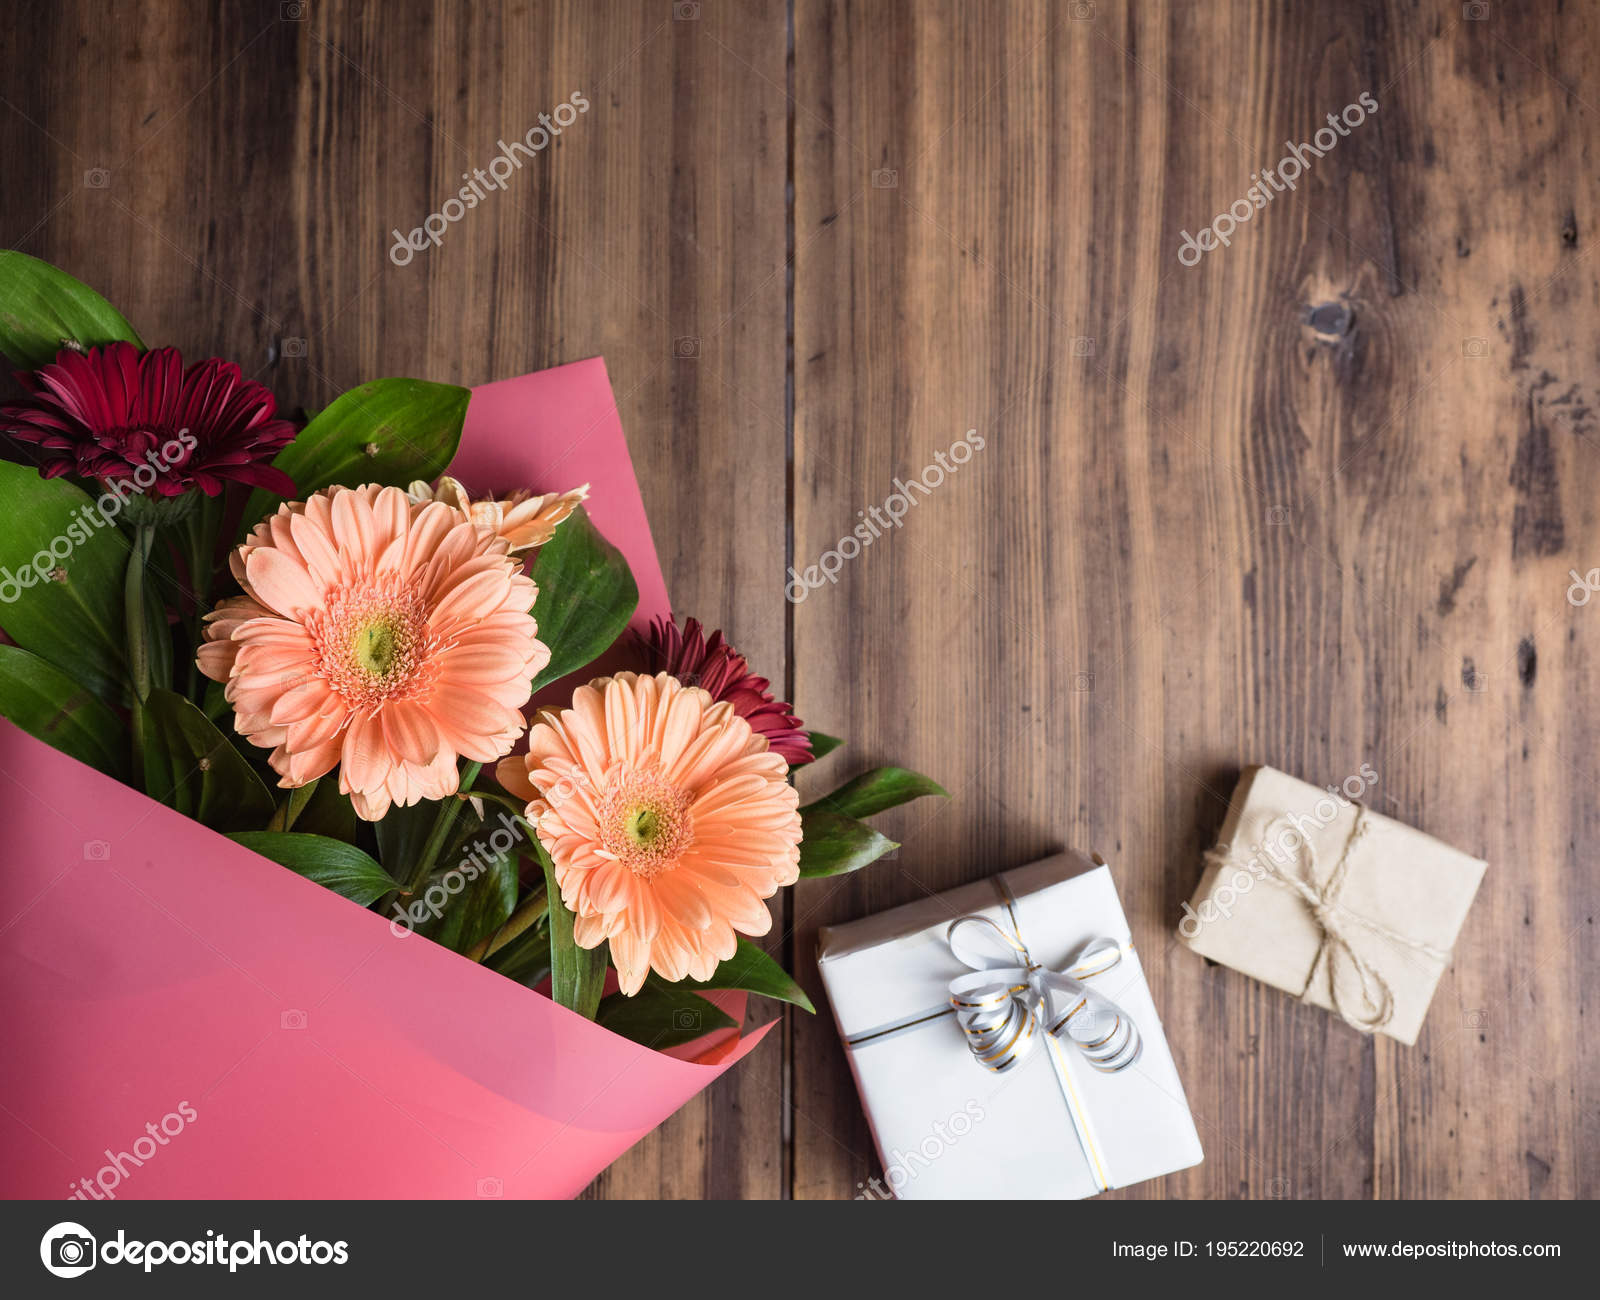 Flowers on old wooden background top view bouquet of flowers in flowers on old wooden background top view bouquet of flowers in pink wrapper with gift boxes izmirmasajfo